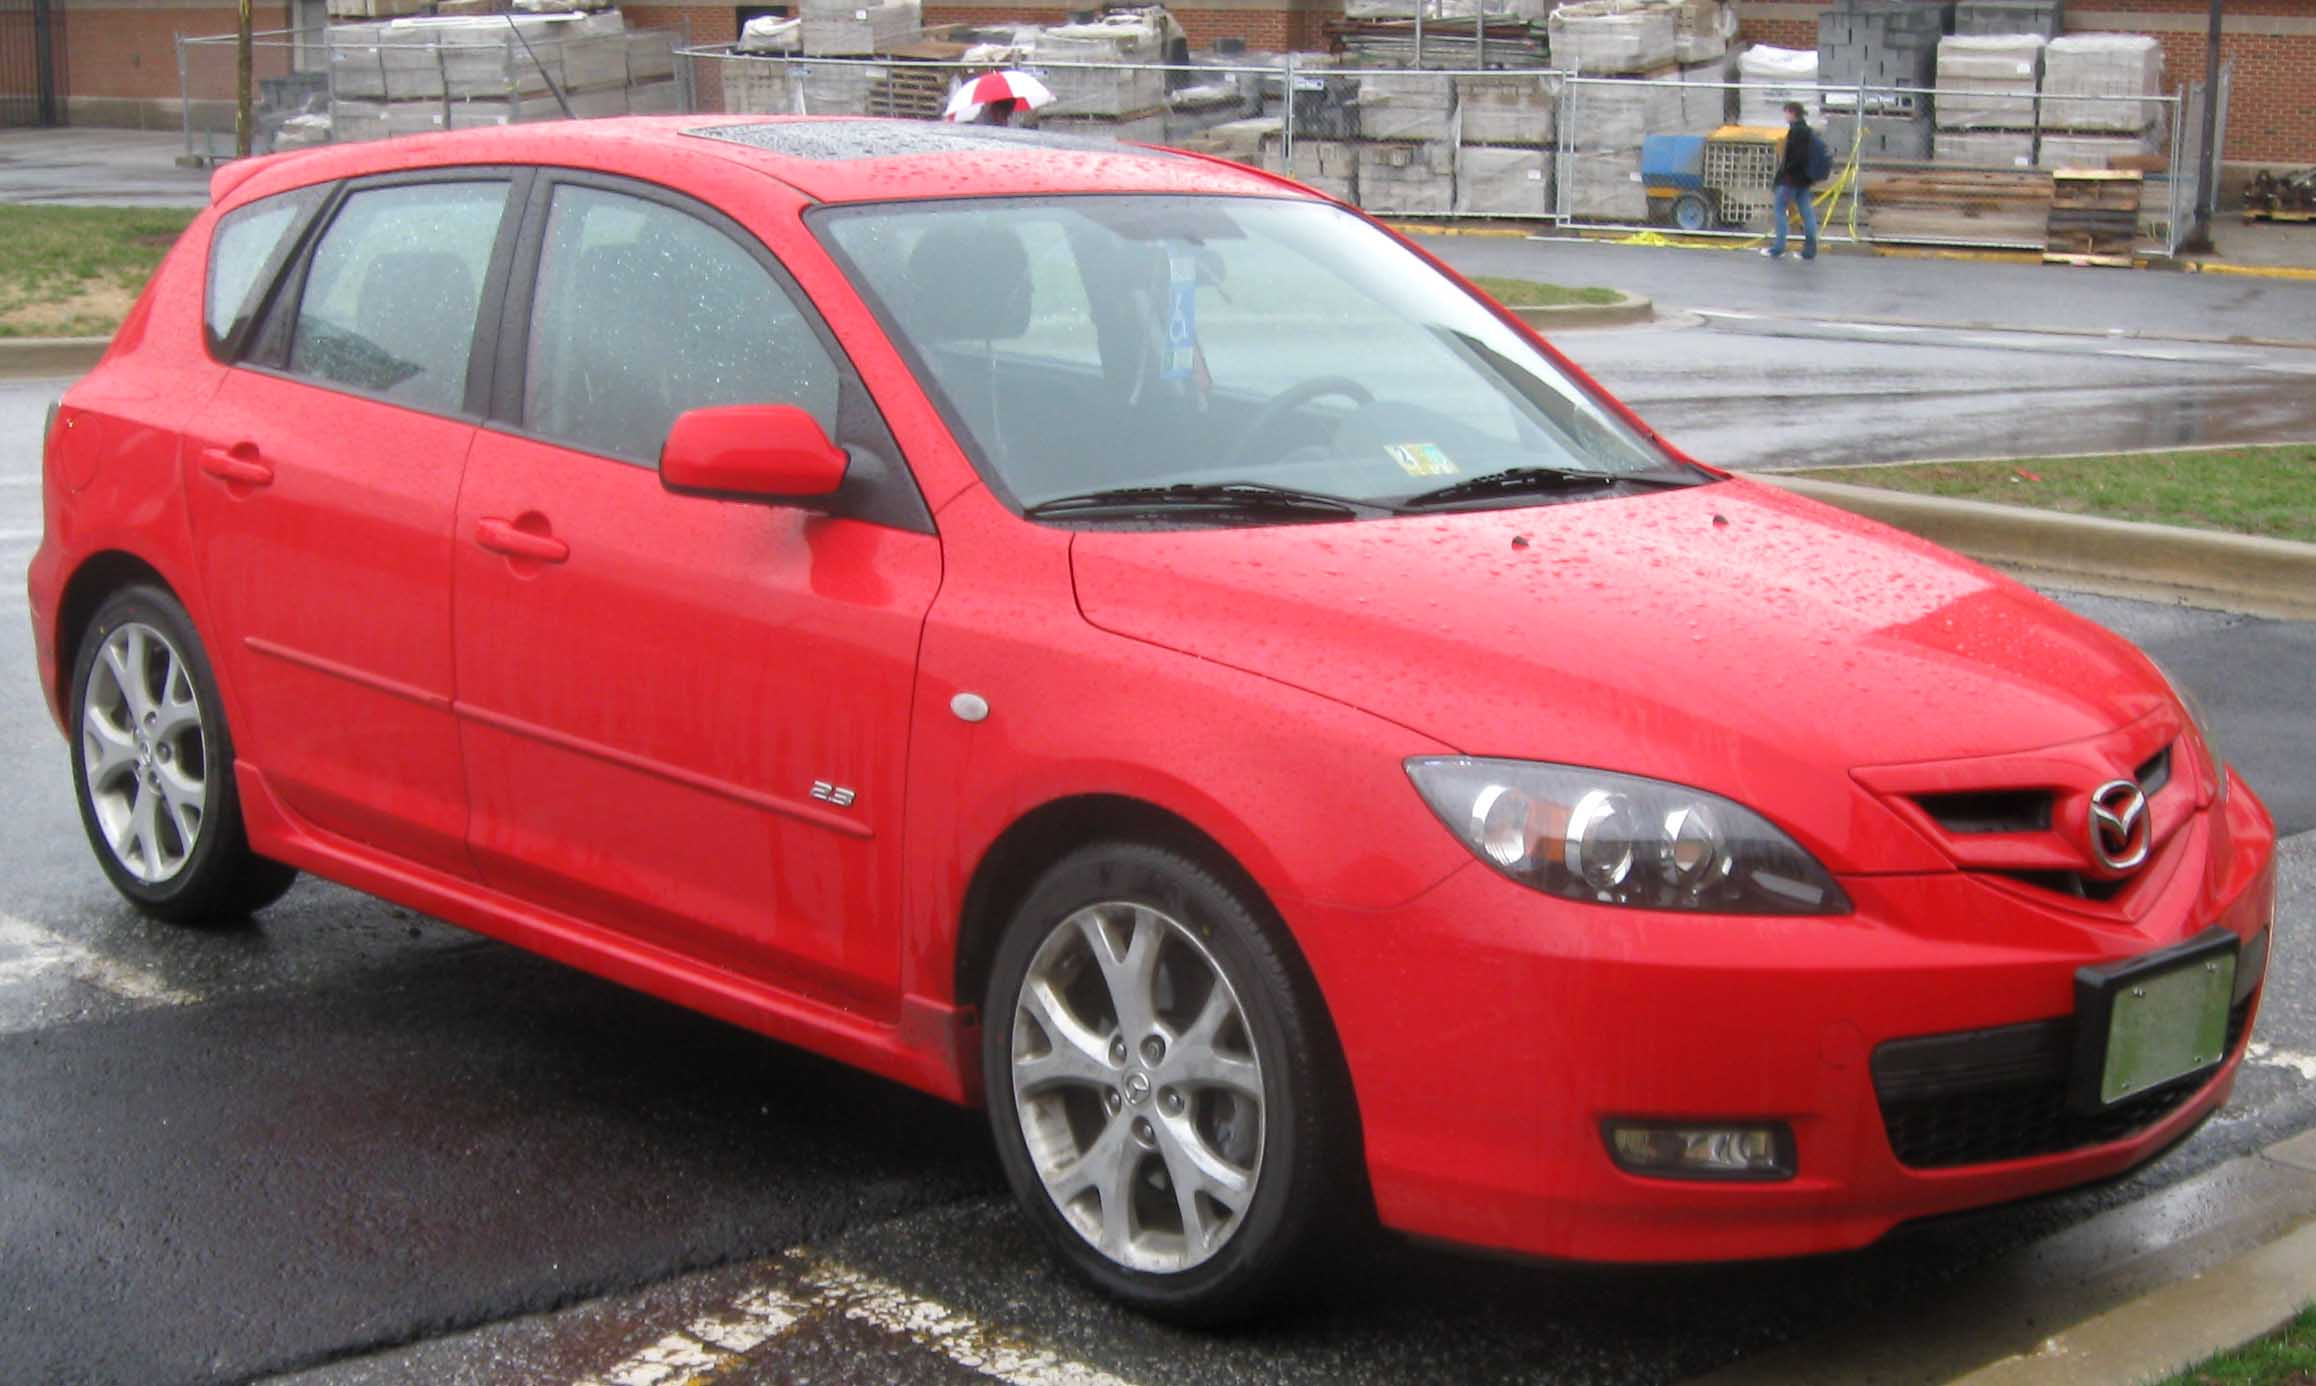 file:07-09 mazda3 s hatch front - wikimedia commons